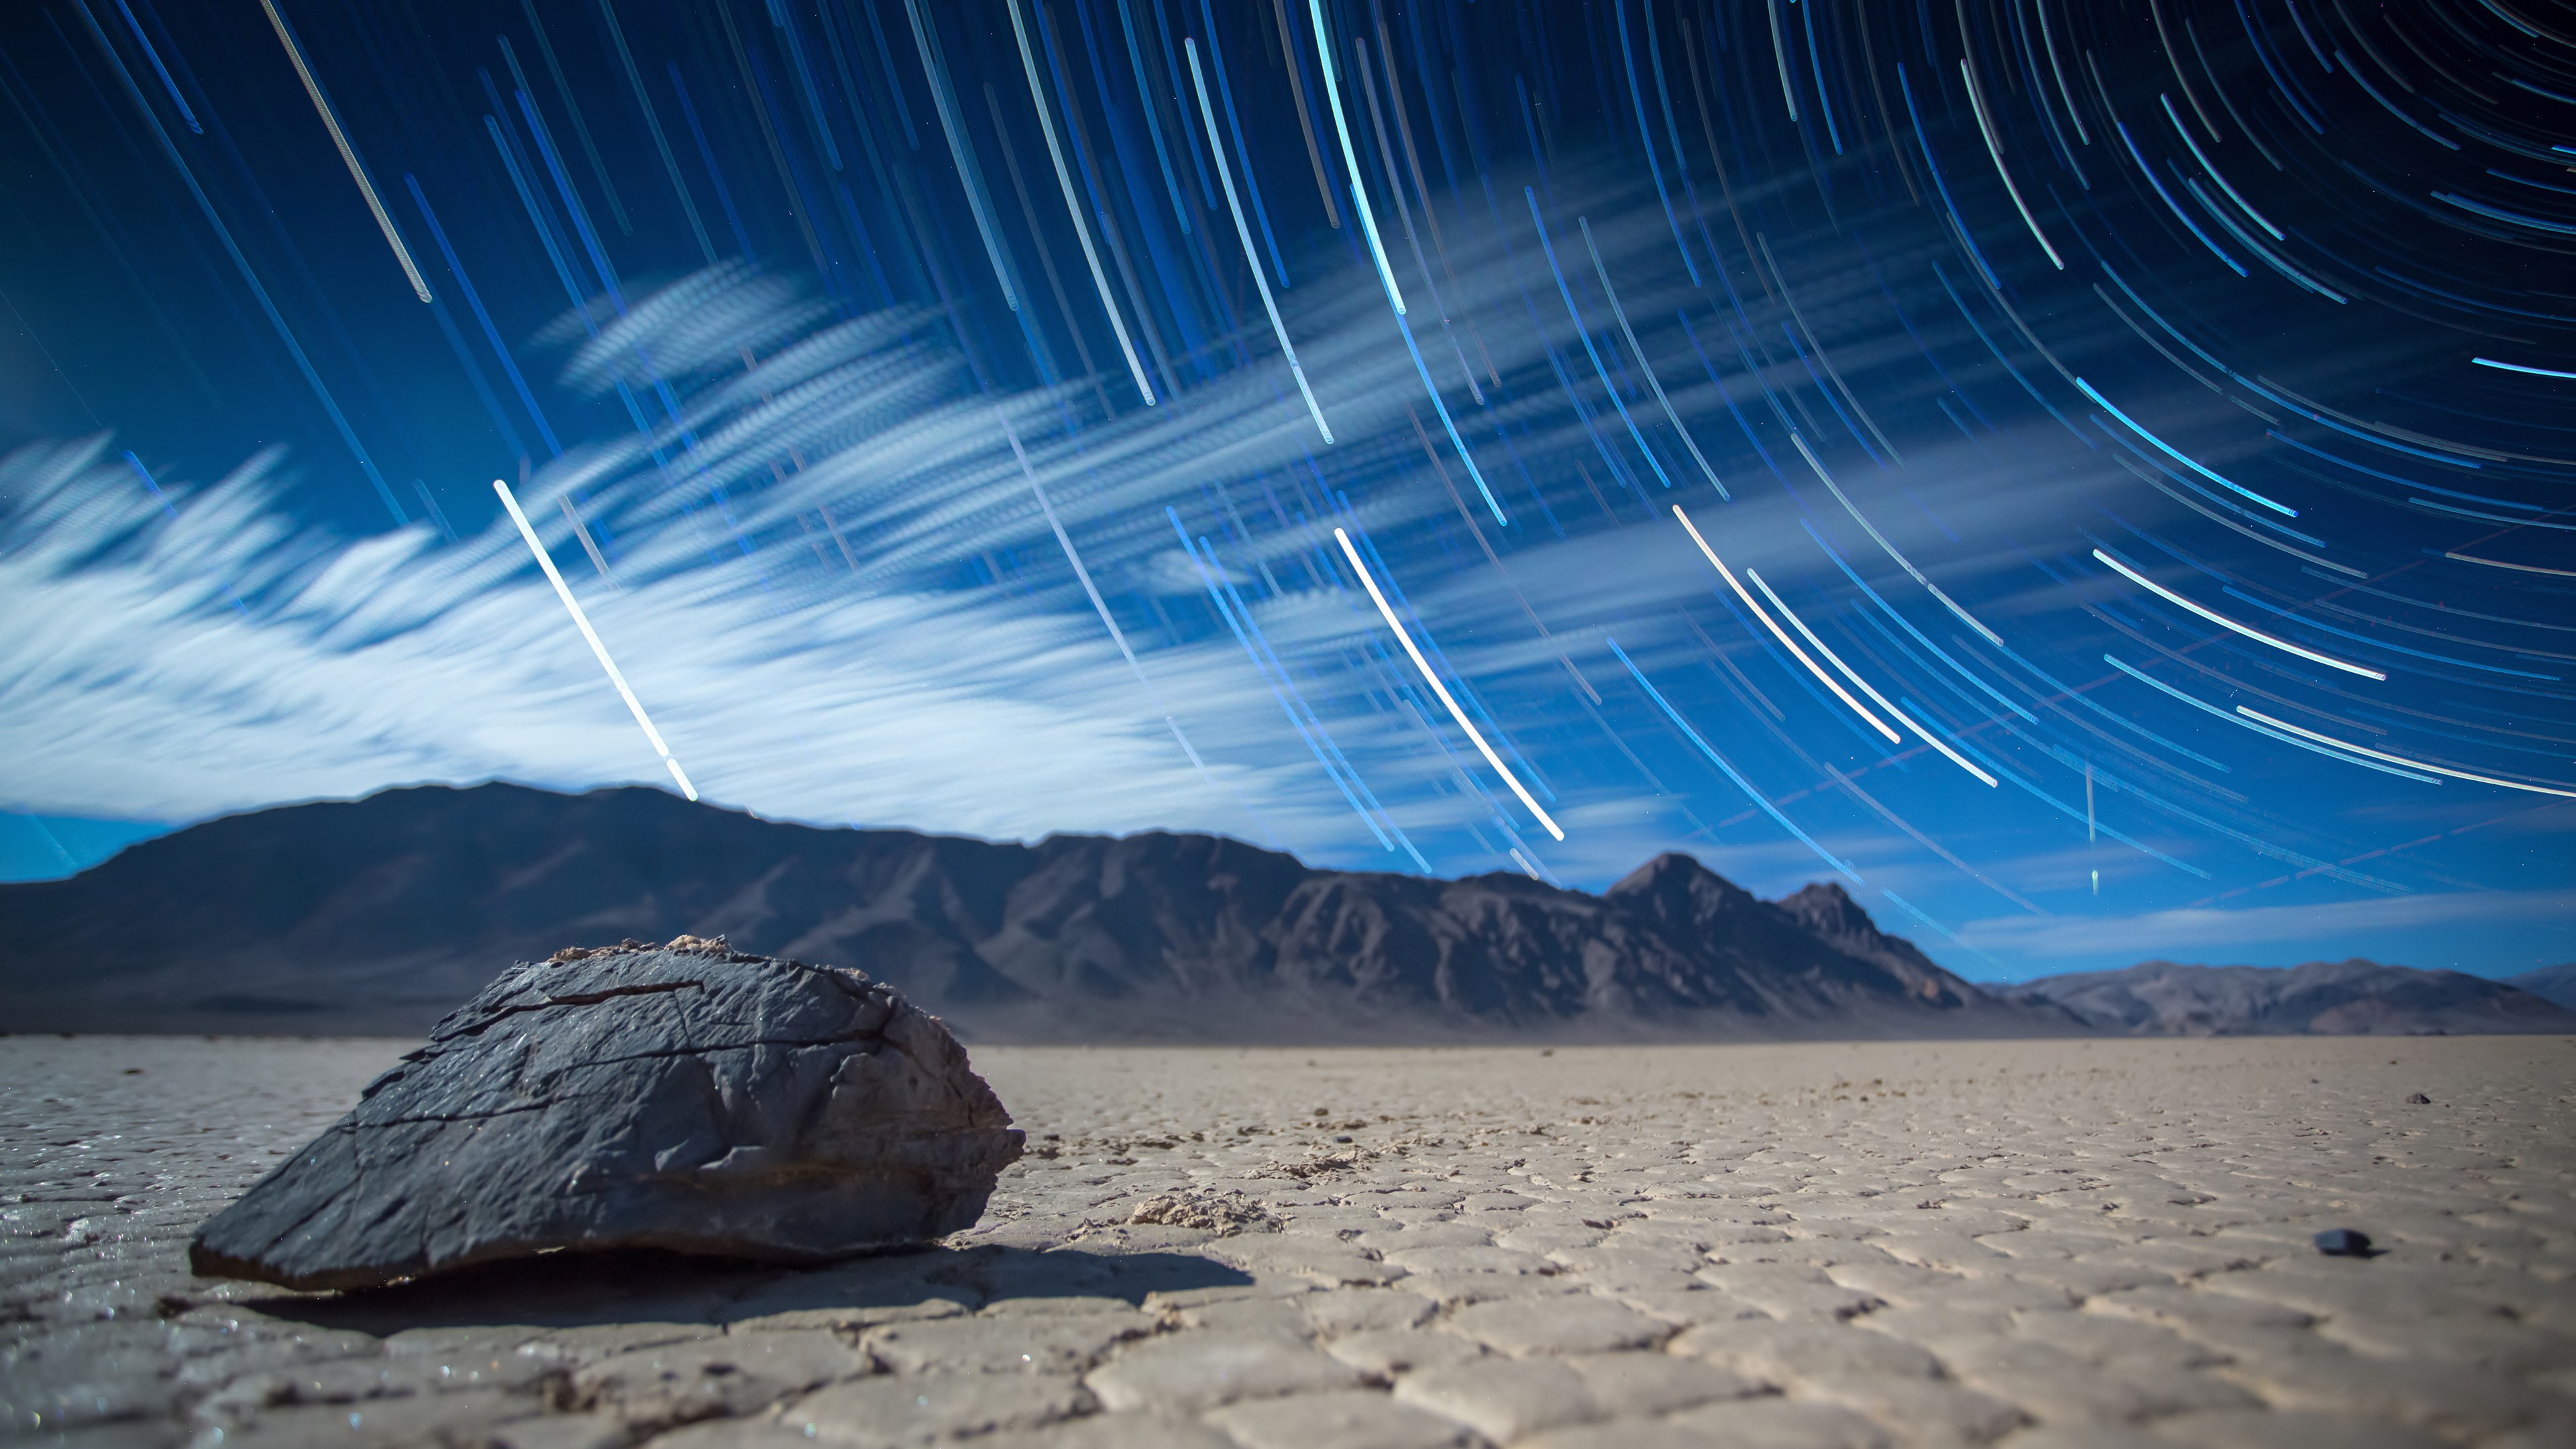 Death Valley 4k Ultra Hd Wallpaper Background Image 3840x2160